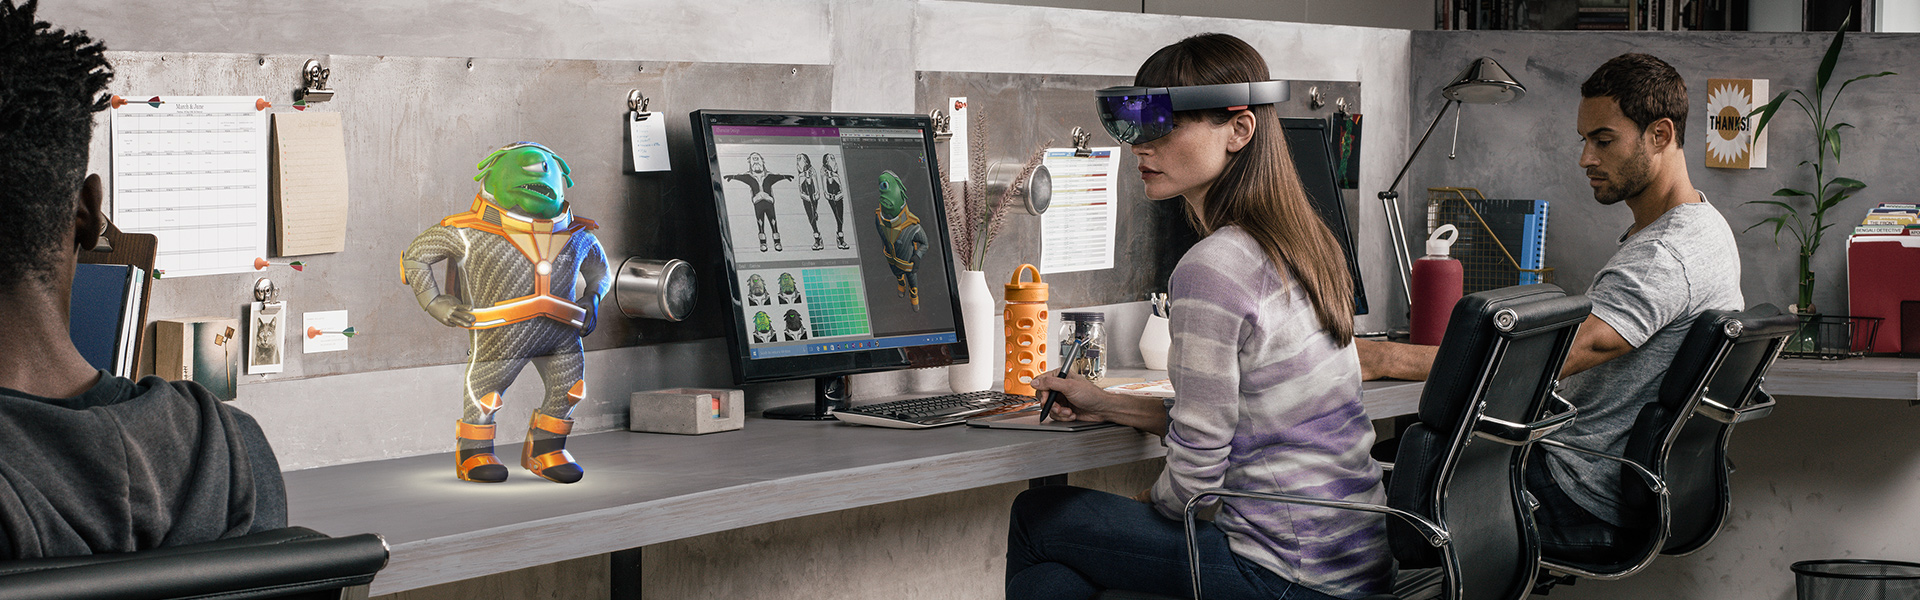 Unlock new commercial possibilities with Microsoft HoloLens